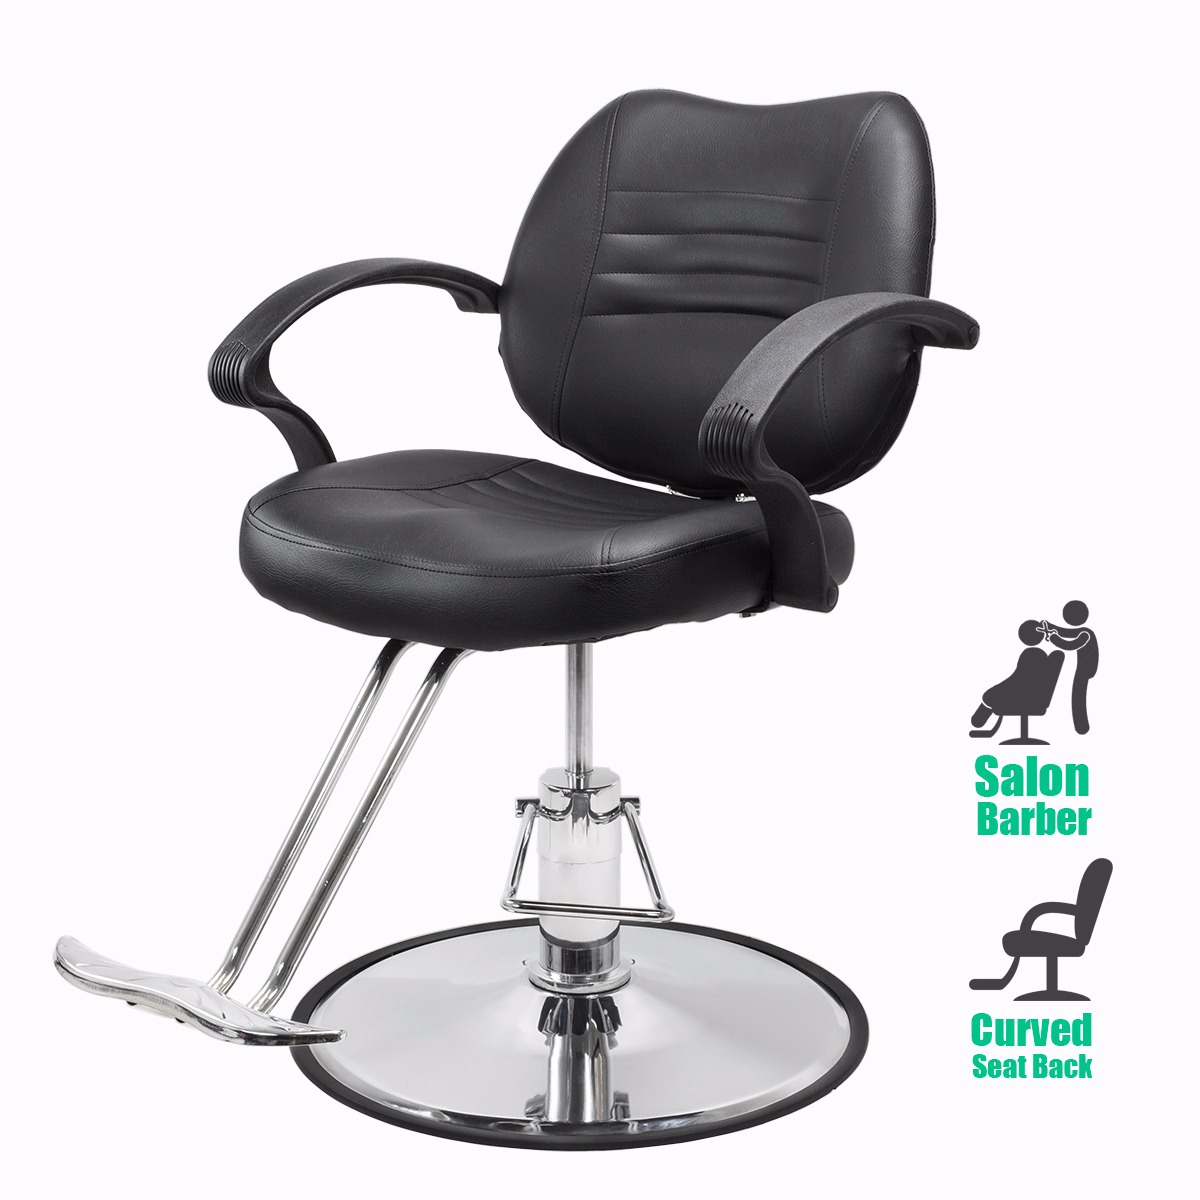 beauty salon chair dining table glass top 6 chairs bestsalon barber hydraulic styling black walmart com